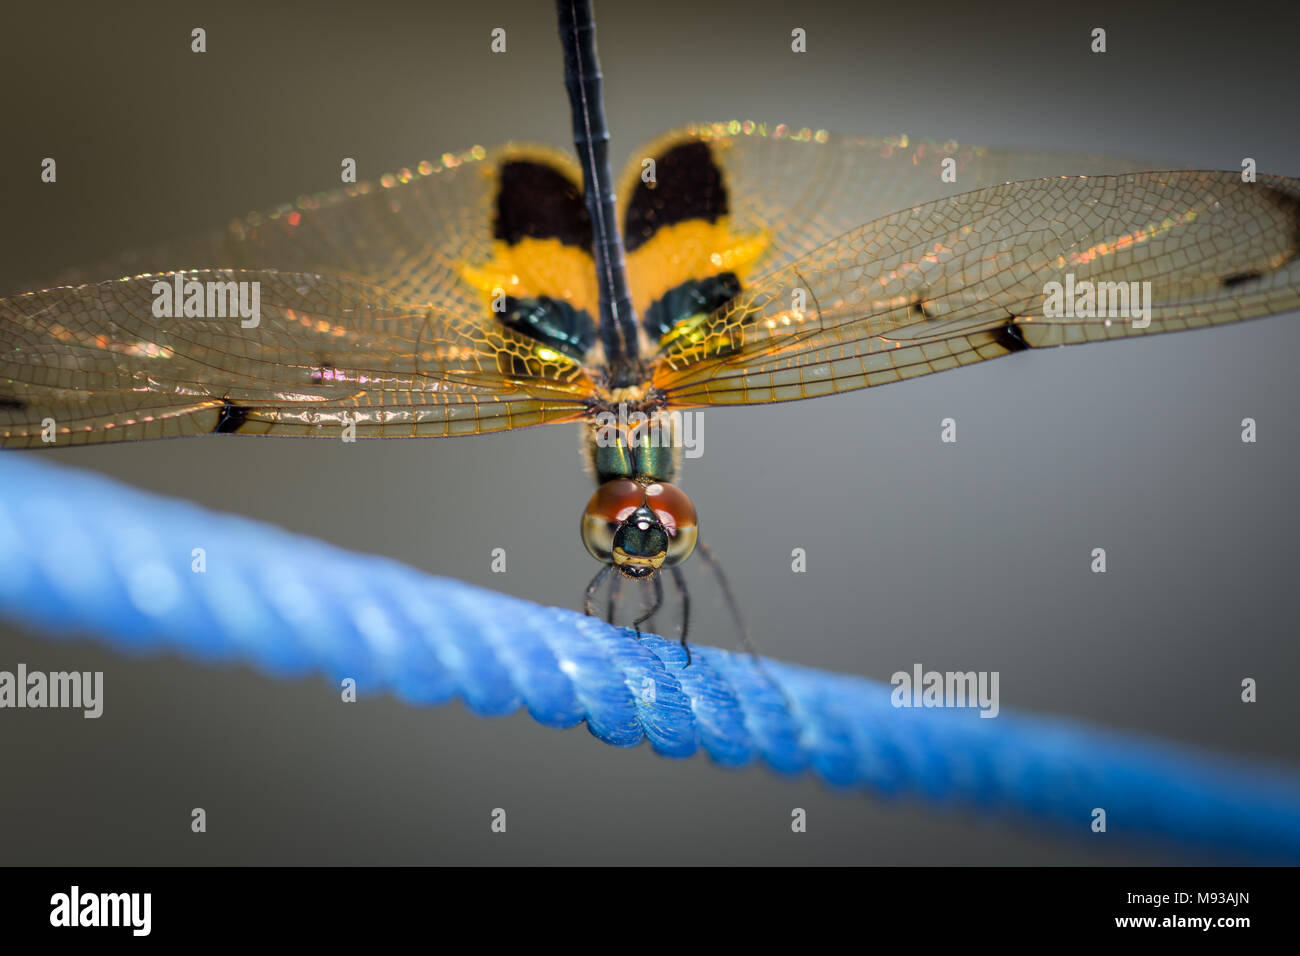 Rhyothemis phyllis Dragonfly more commonly known as the yellow-striped flutterer. Detailed close-up macro photography of dragonfly obelisk posture - Stock Image